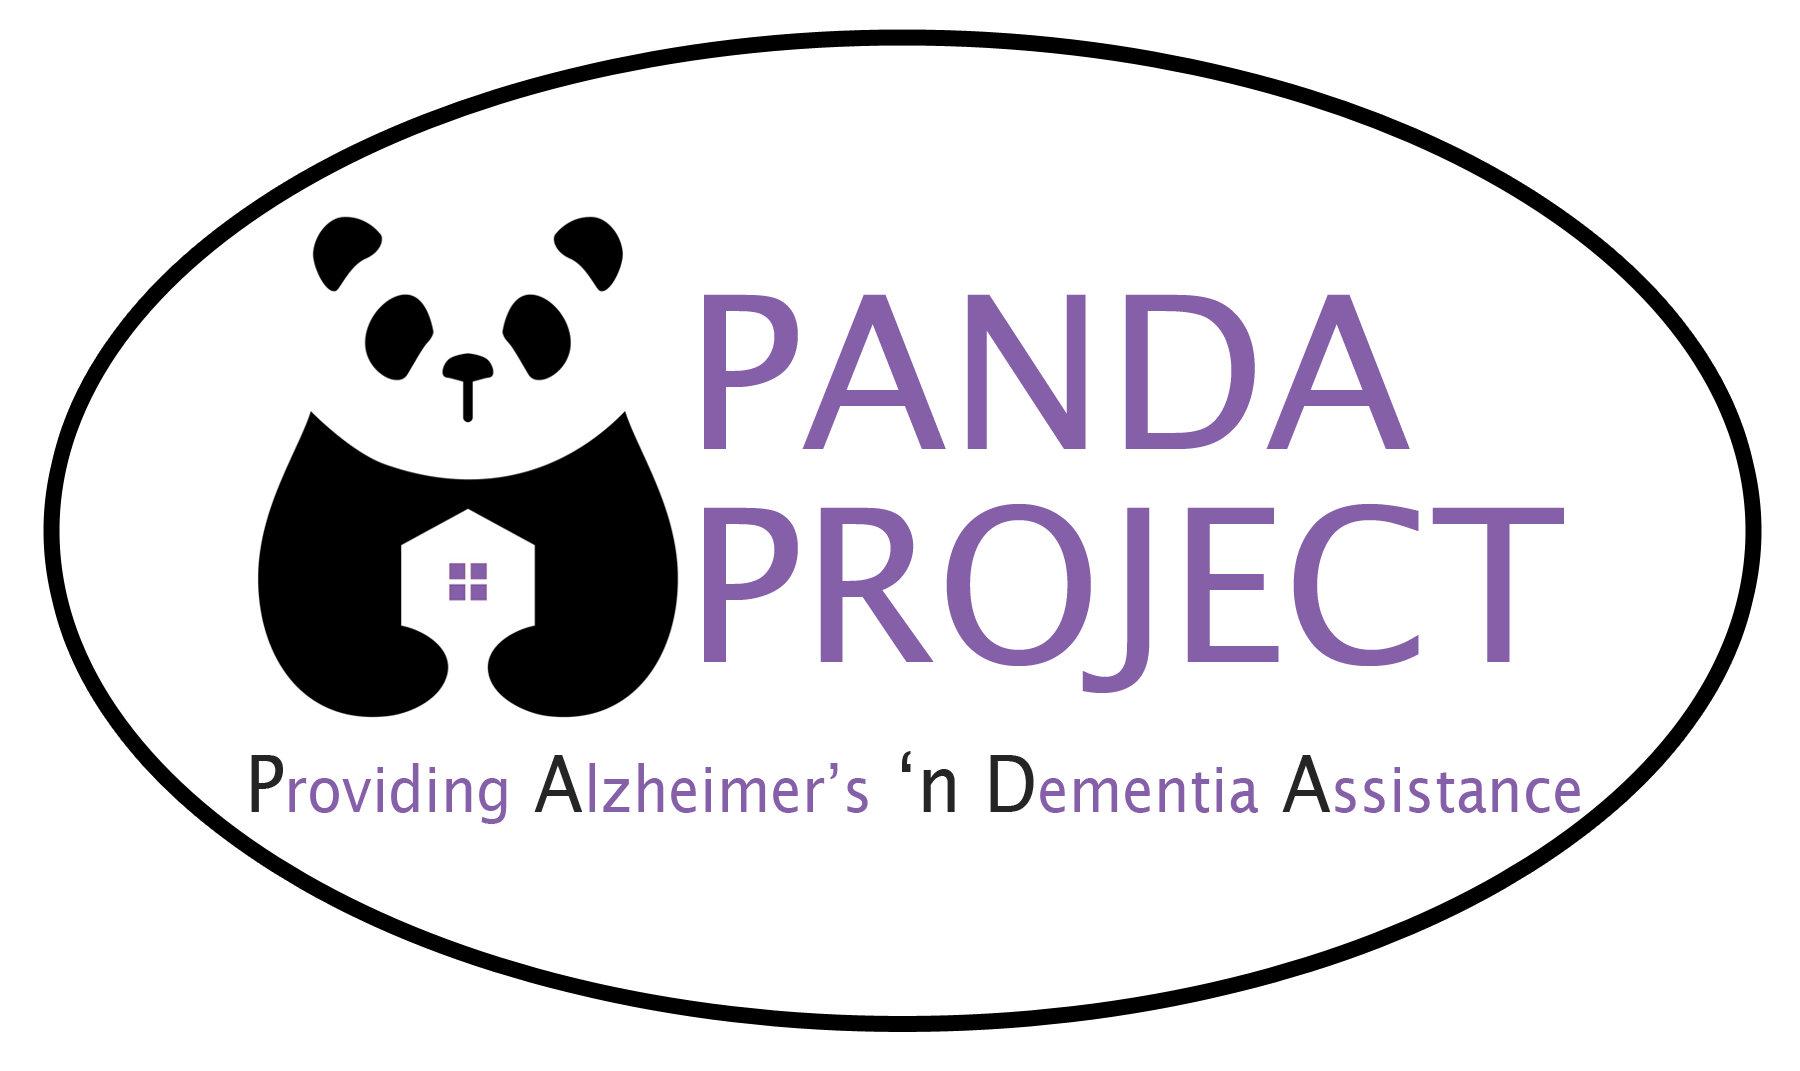 The PANDA Project: New Resources for Dementia Caregivers in Alabama